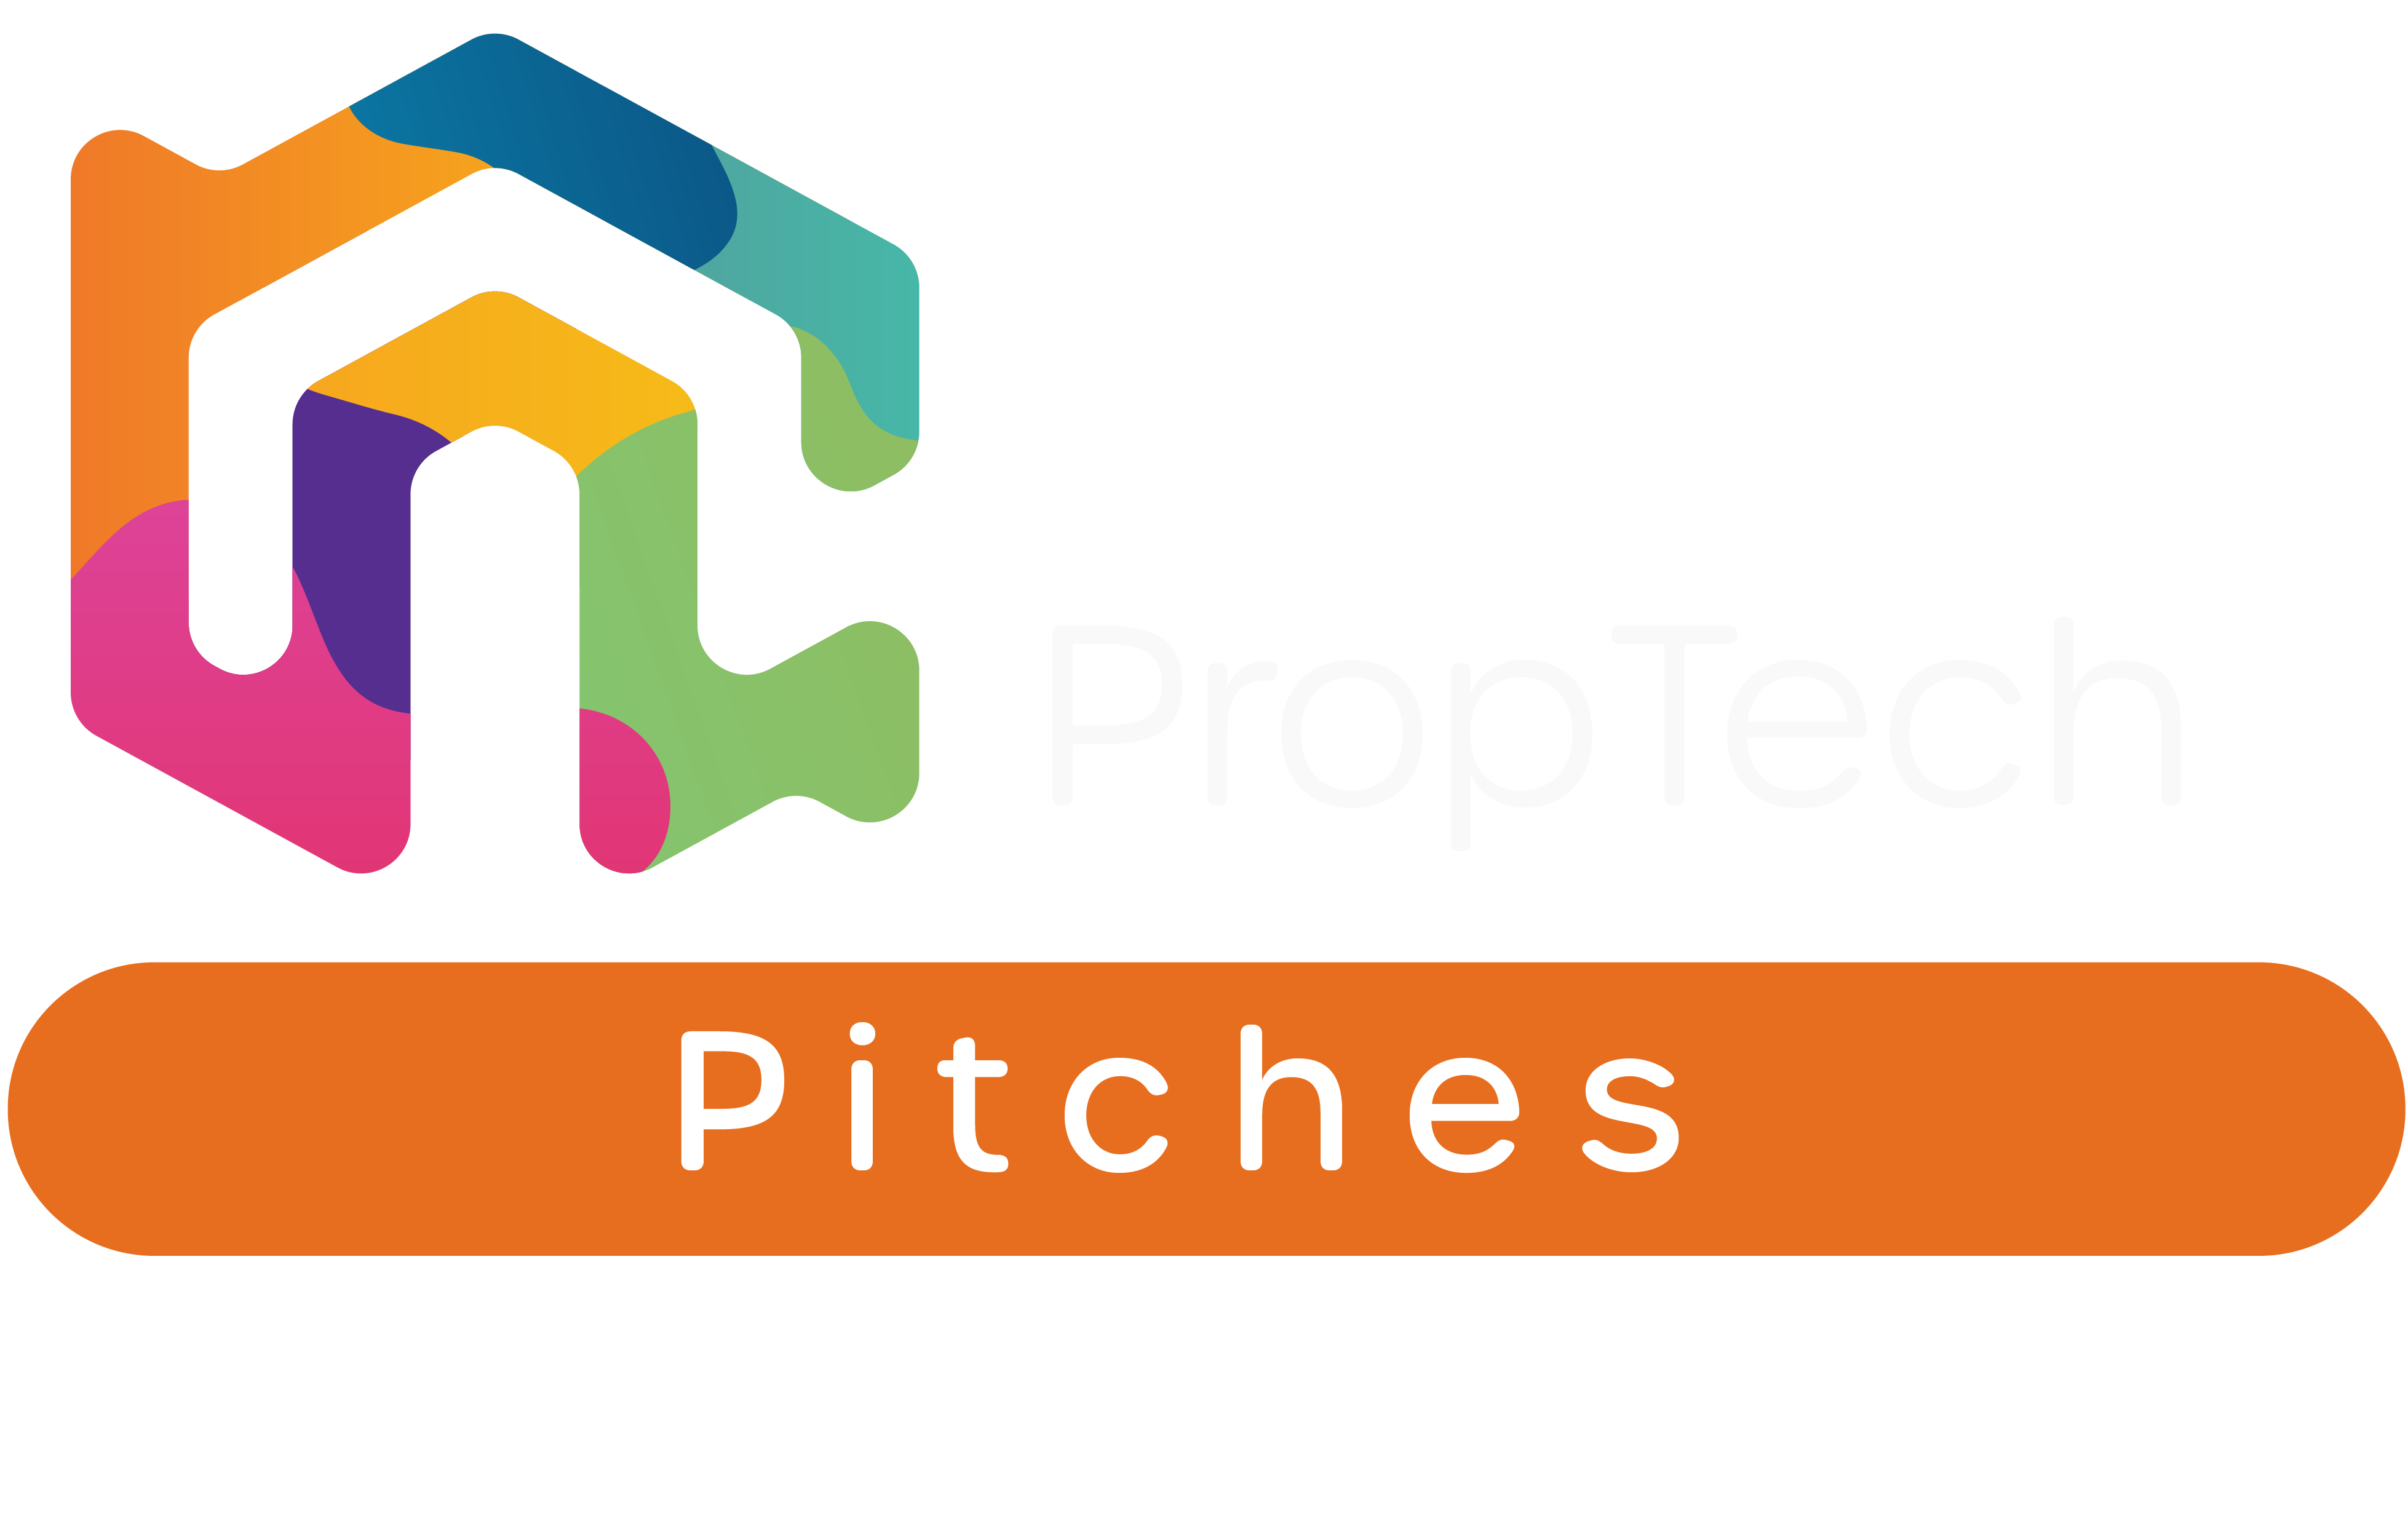 REAL PropTech Pitch 2021